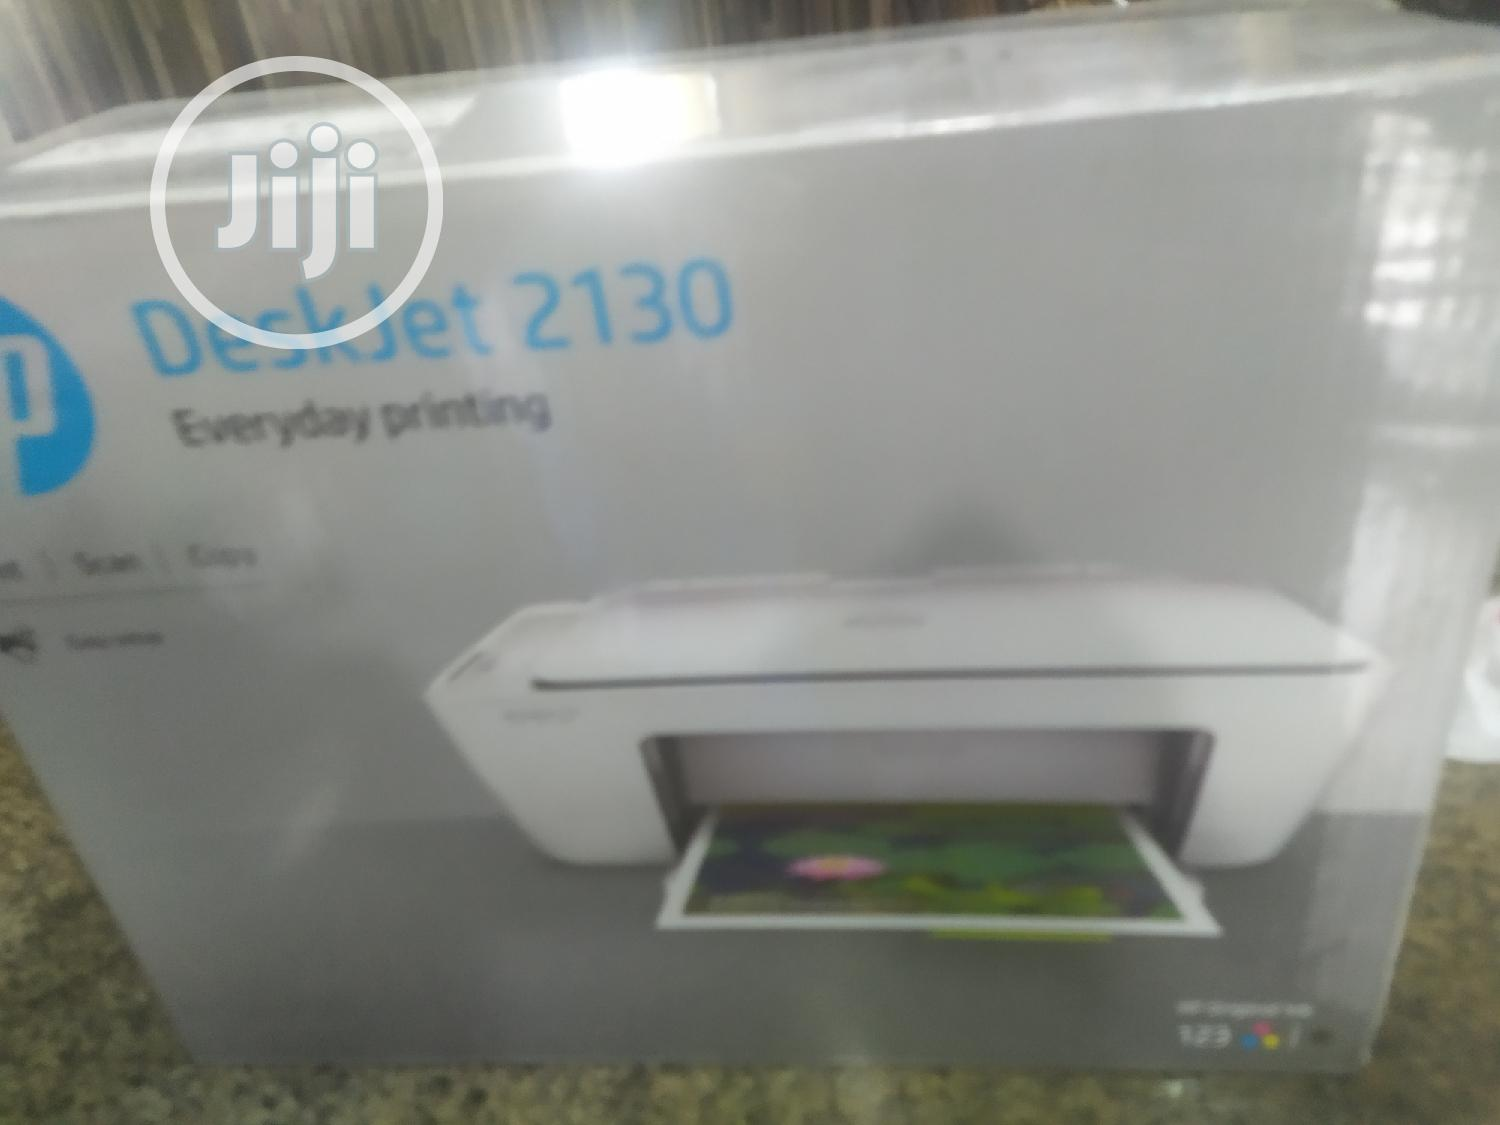 Hp Deskjet 2130 All In 1 Color Printer | Printers & Scanners for sale in Apapa, Lagos State, Nigeria